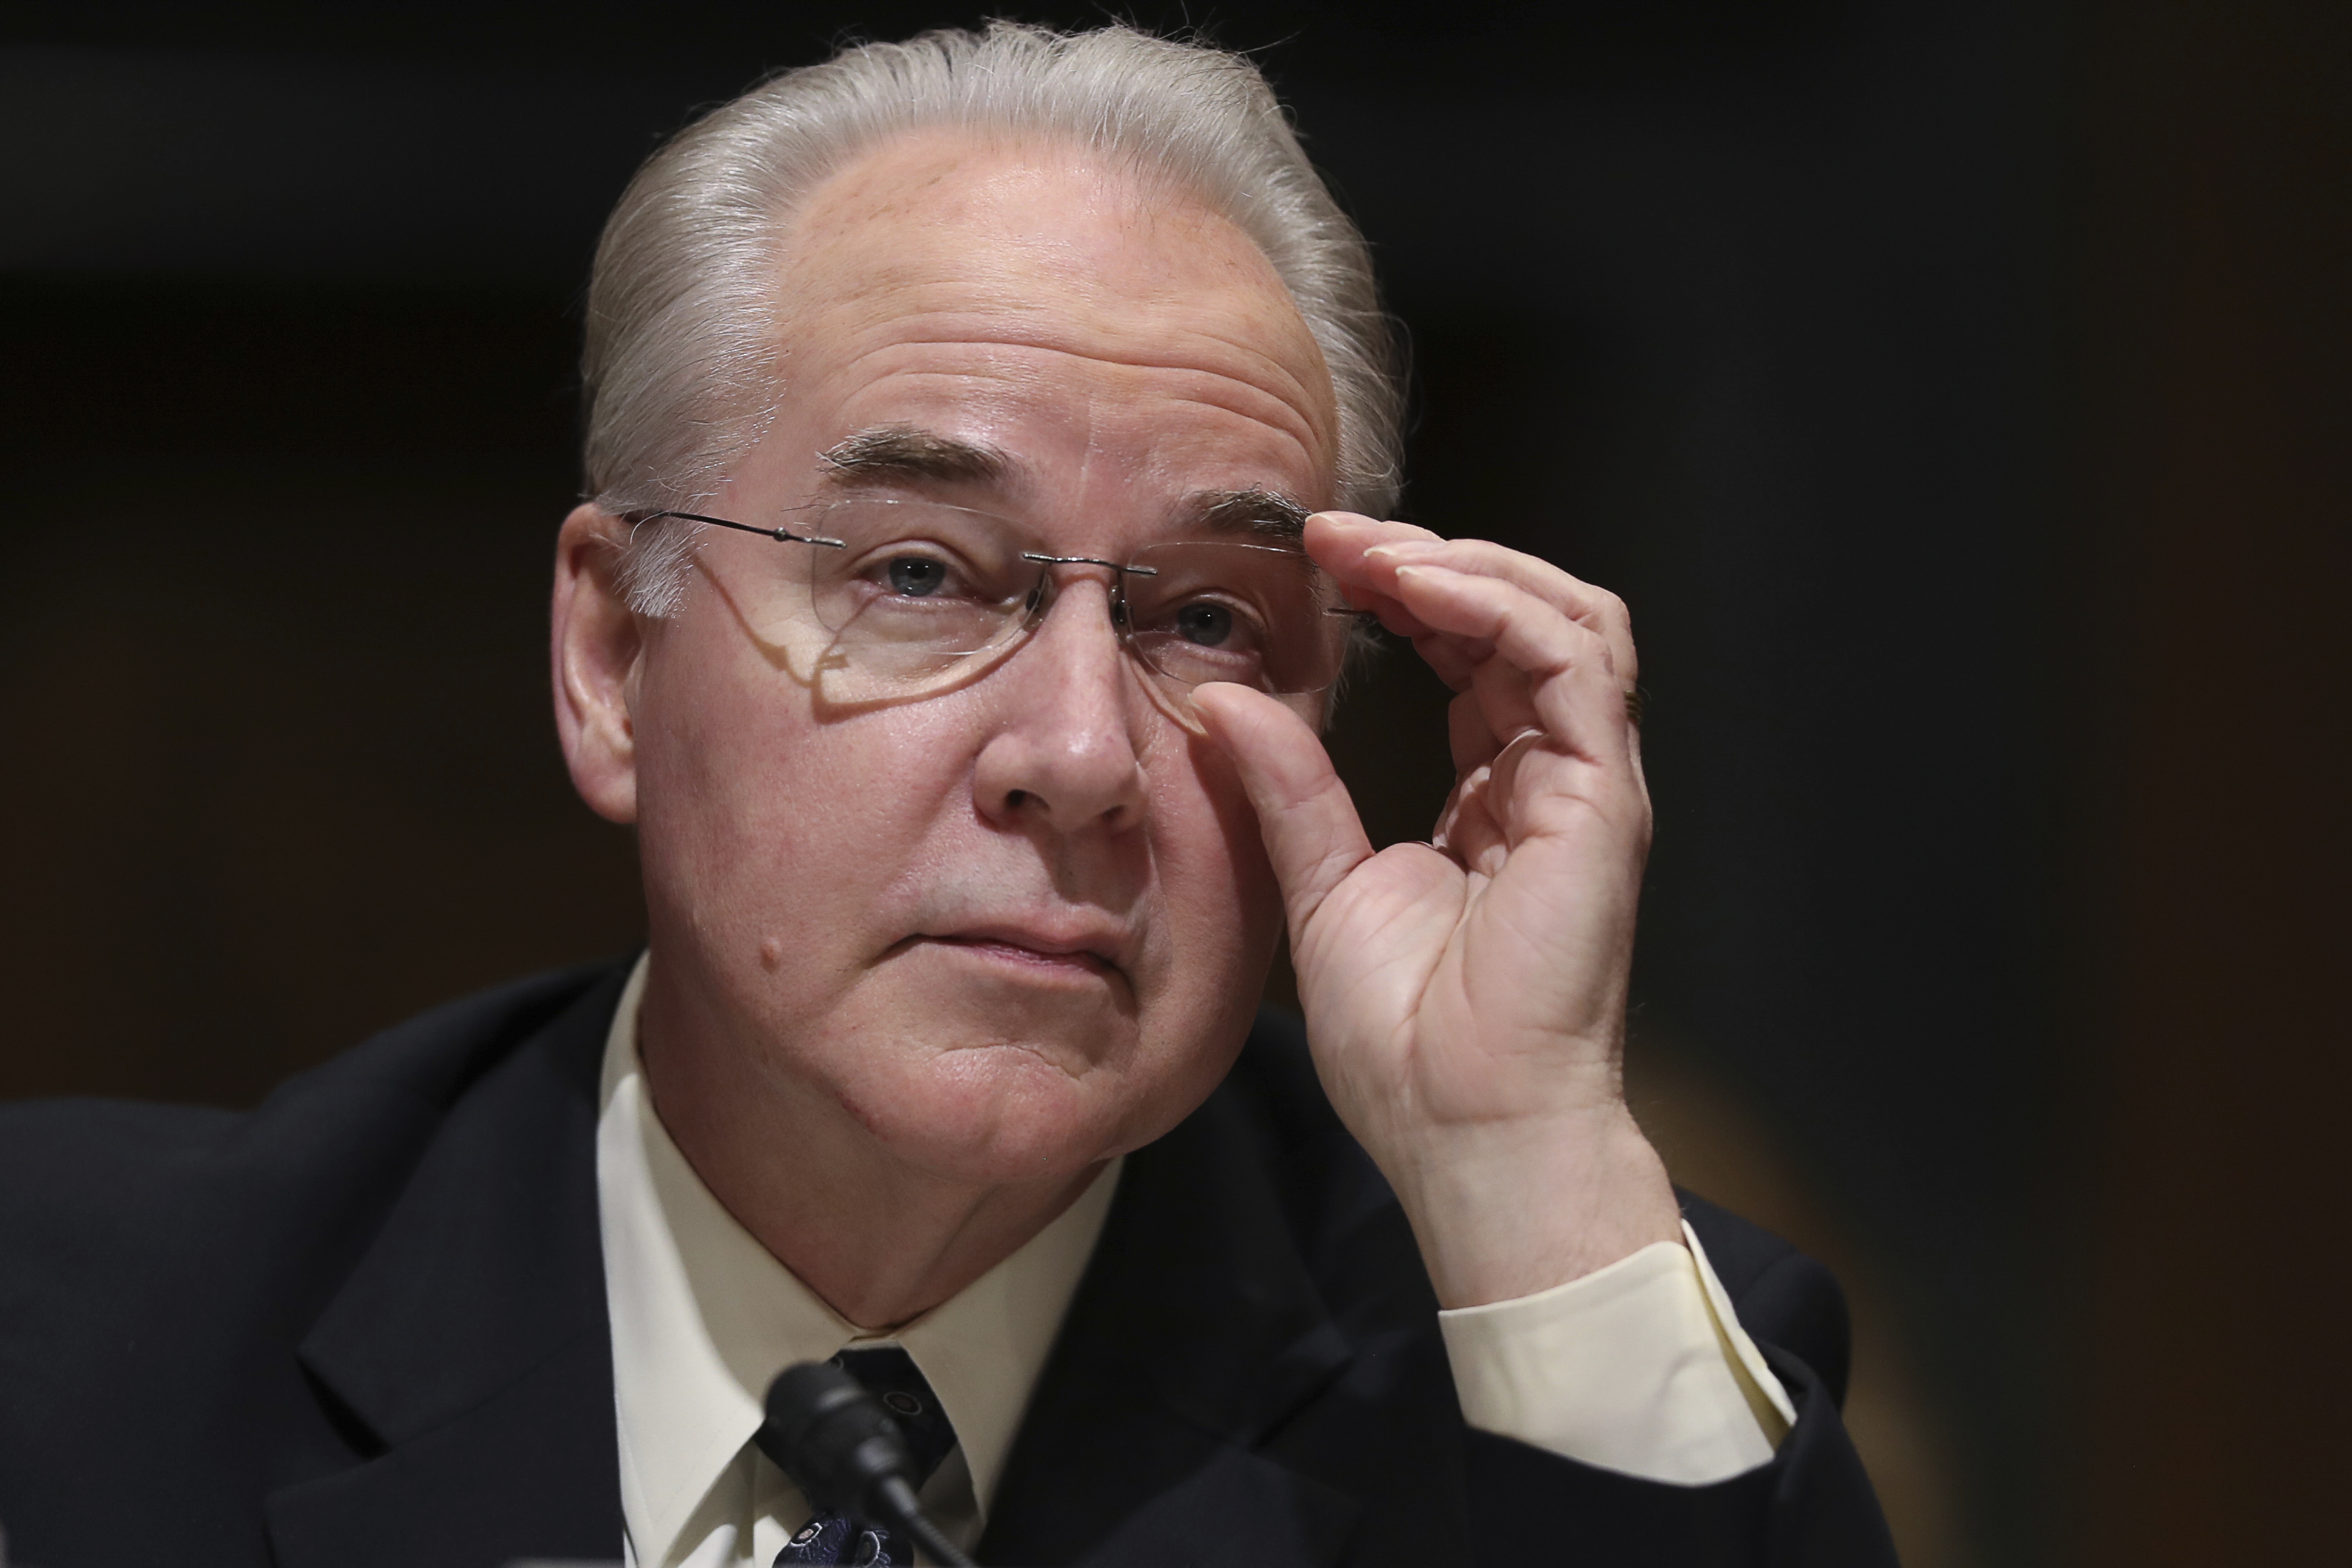 This Jan. 24, 2017 file photo shows Health and Human Services Secretary-designate, Rep. Tom Price, R-Ga. in Capitol Hill, Washington